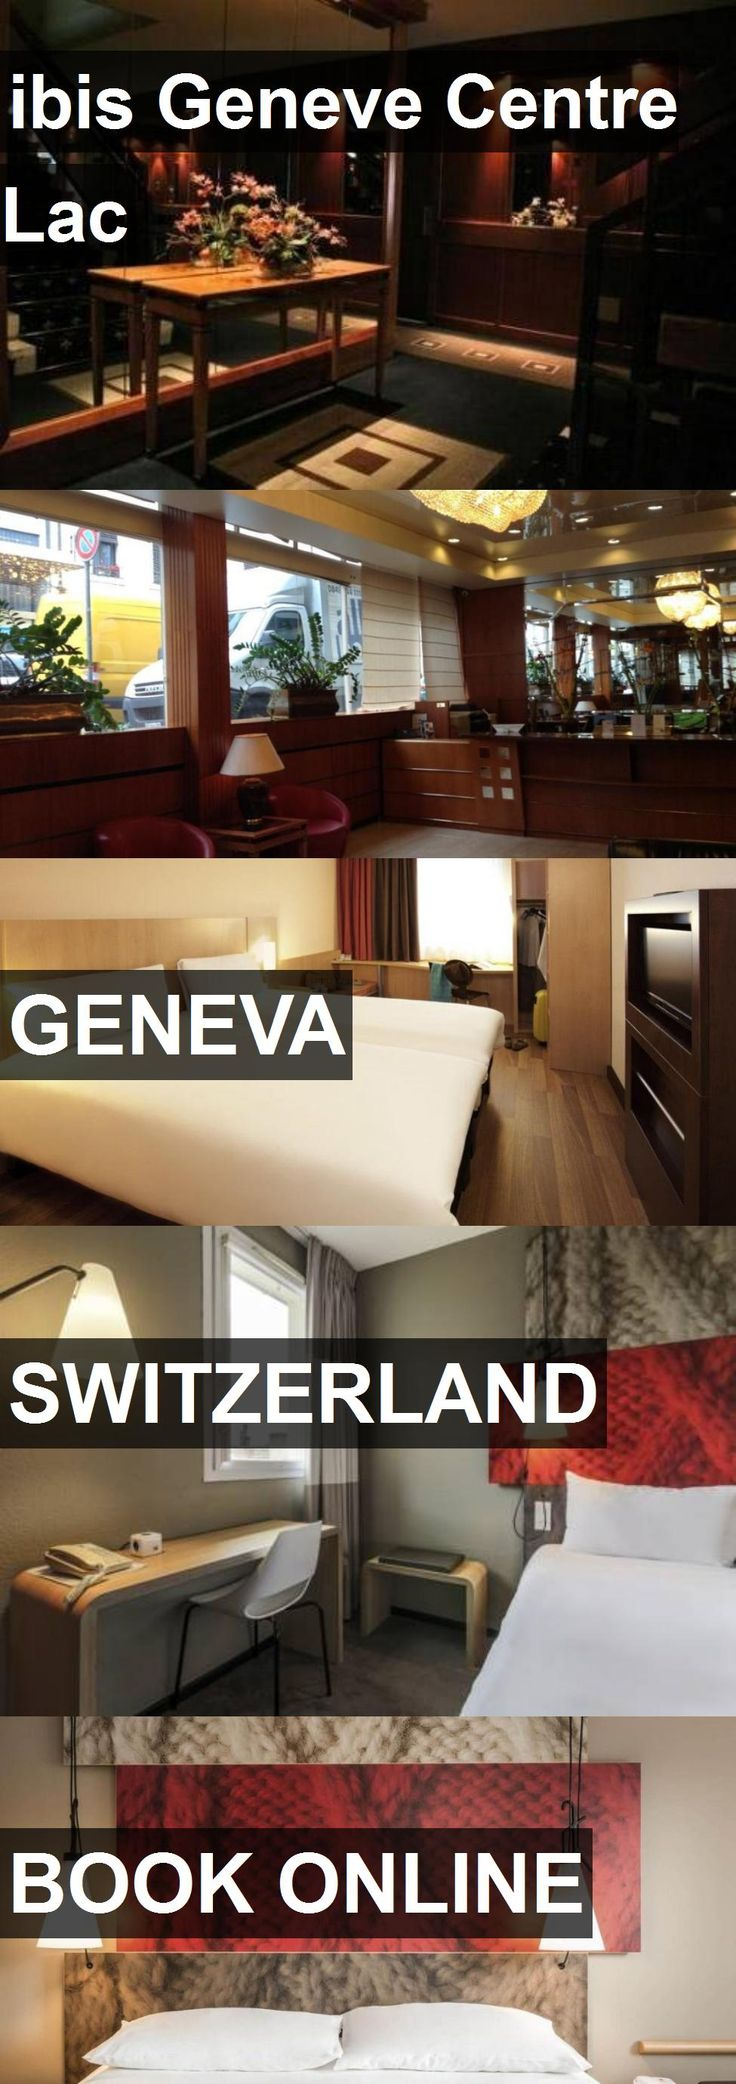 Hotel ibis Geneve Centre Lac in Geneva, Switzerland. For more information, photos, reviews and best prices please follow the link. #Switzerland #Geneva #travel #vacation #hotel